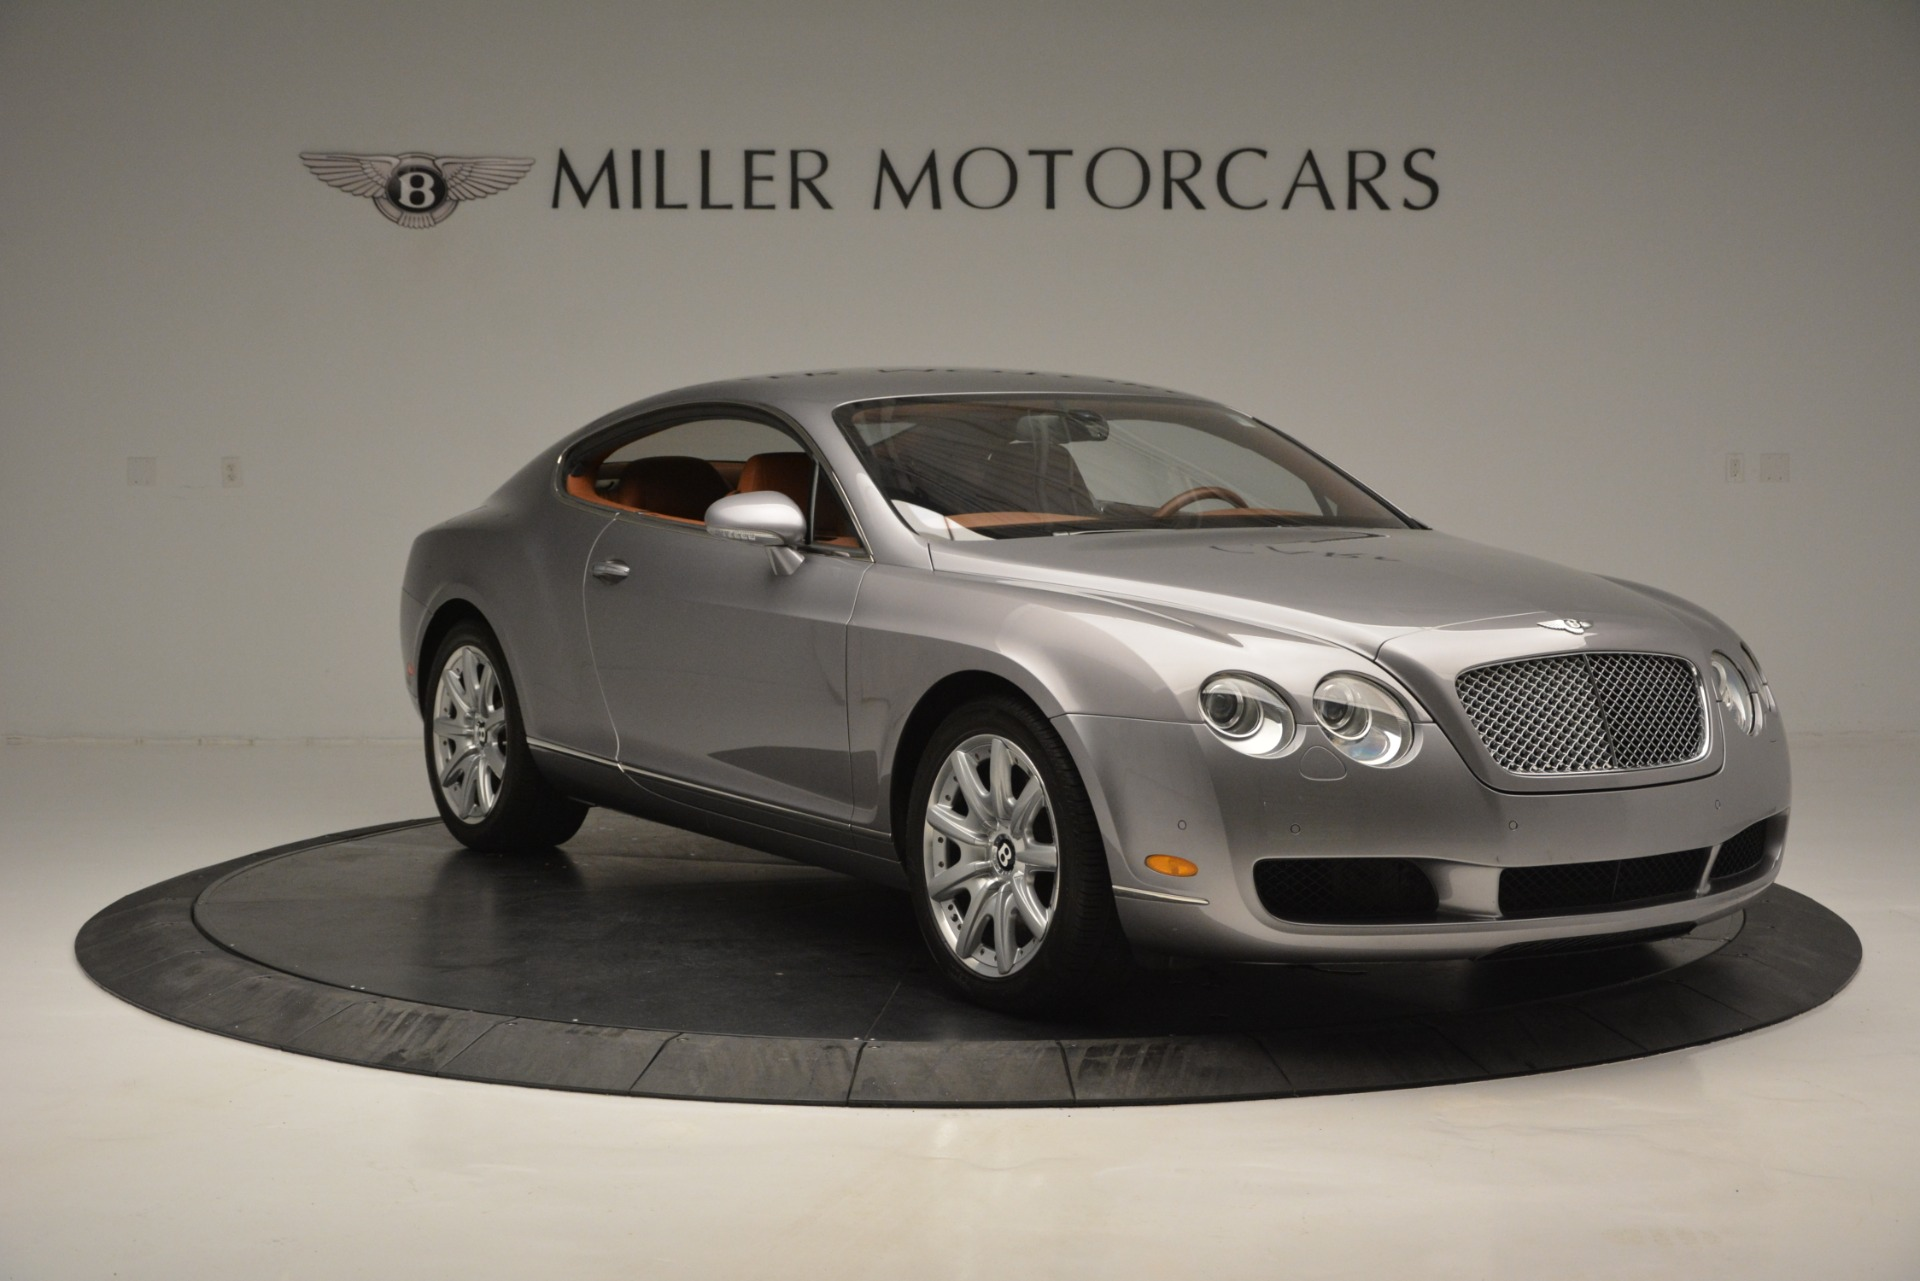 Used 2005 Bentley Continental GT GT Turbo For Sale In Westport, CT 2726_p11